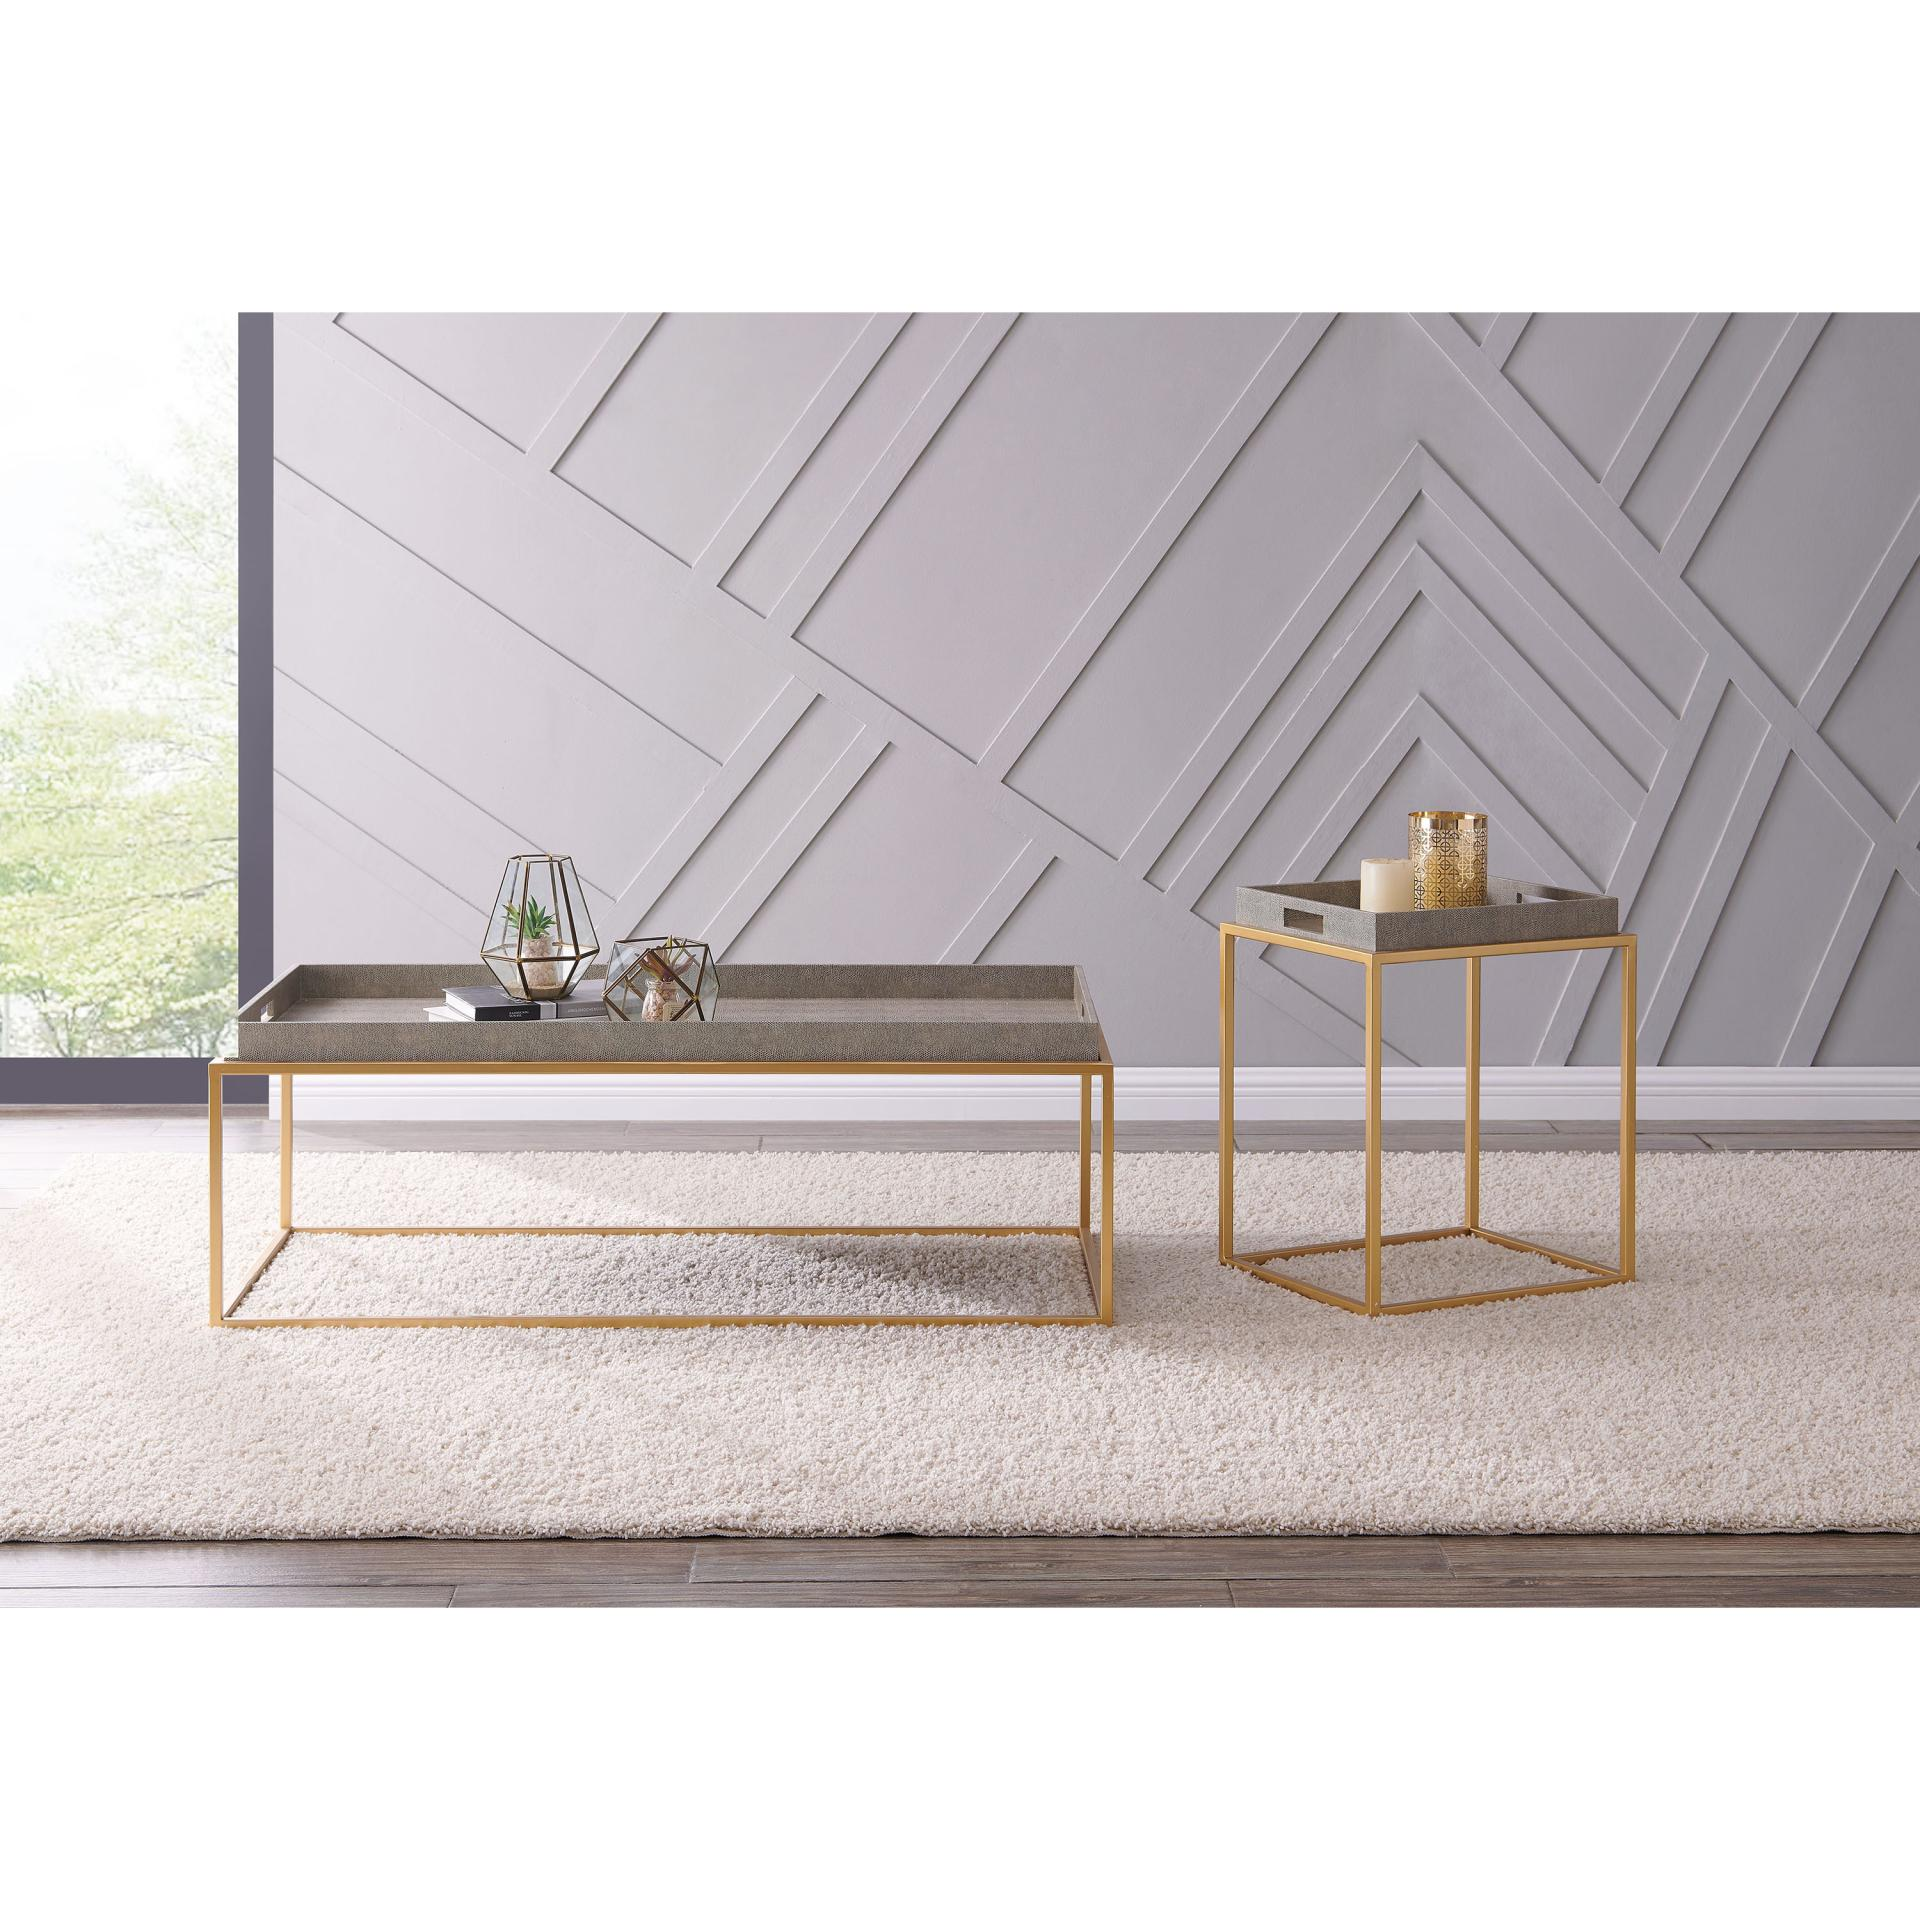 Shagreen Coffee Table Tray: Wholesale Lifestyle Furnishings